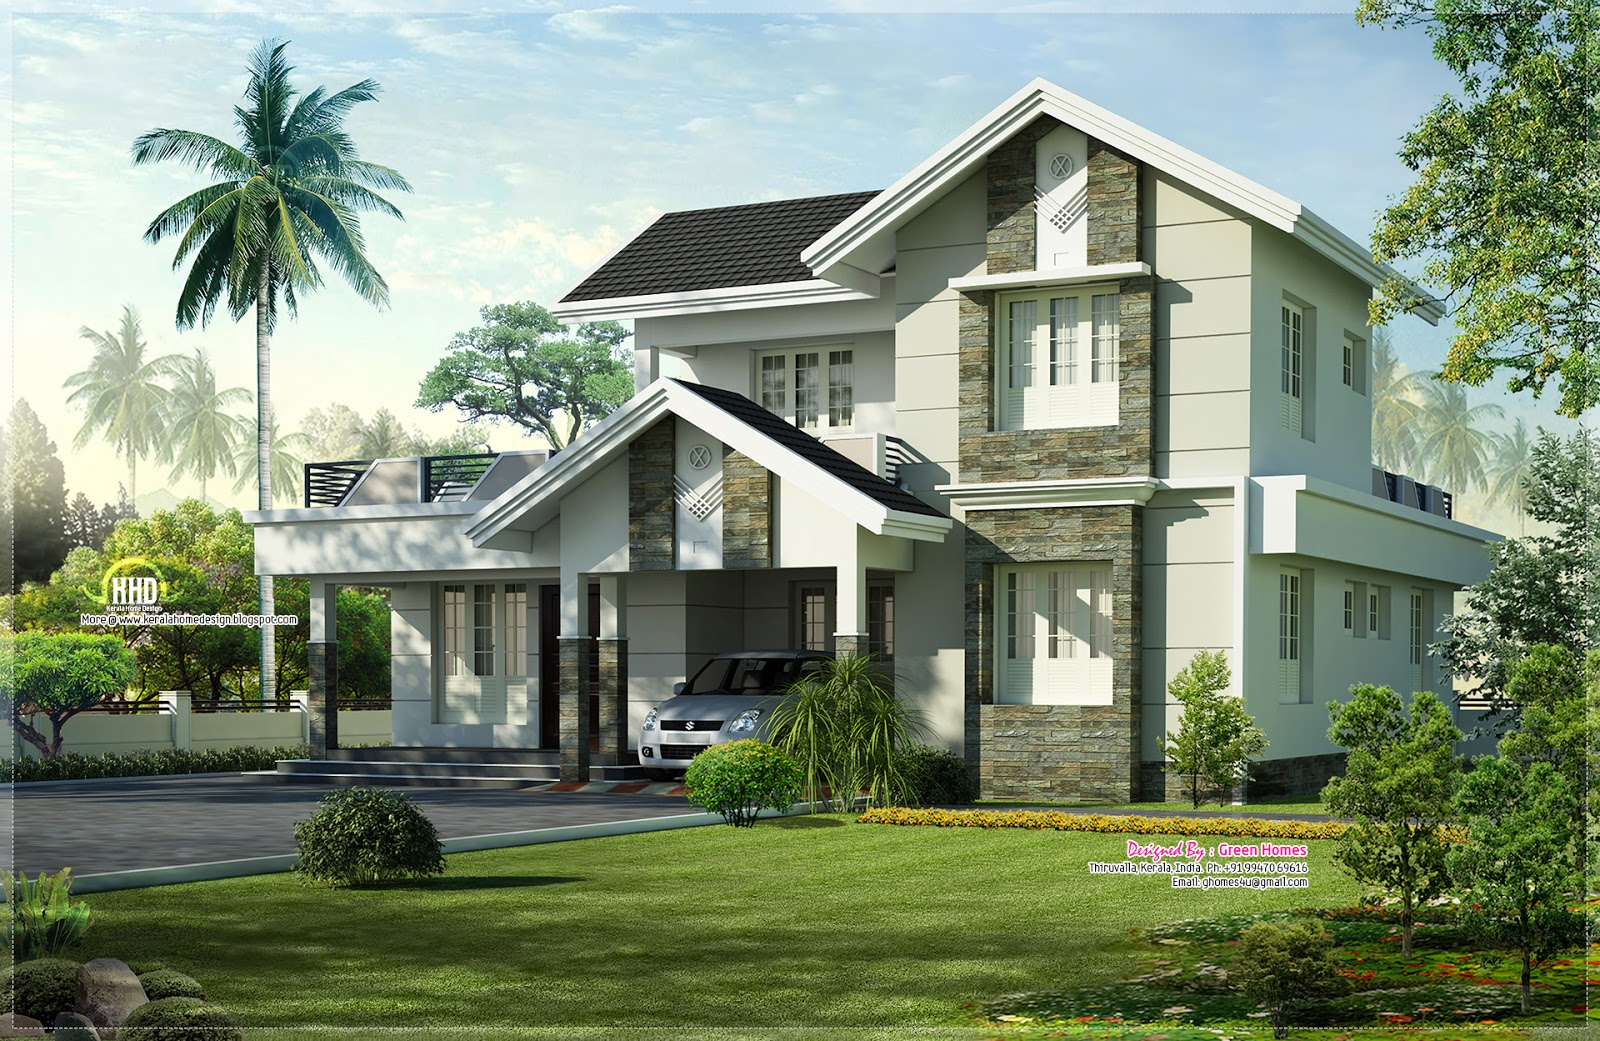 1975 nice home exterior design kerala home for Small home exterior ideas